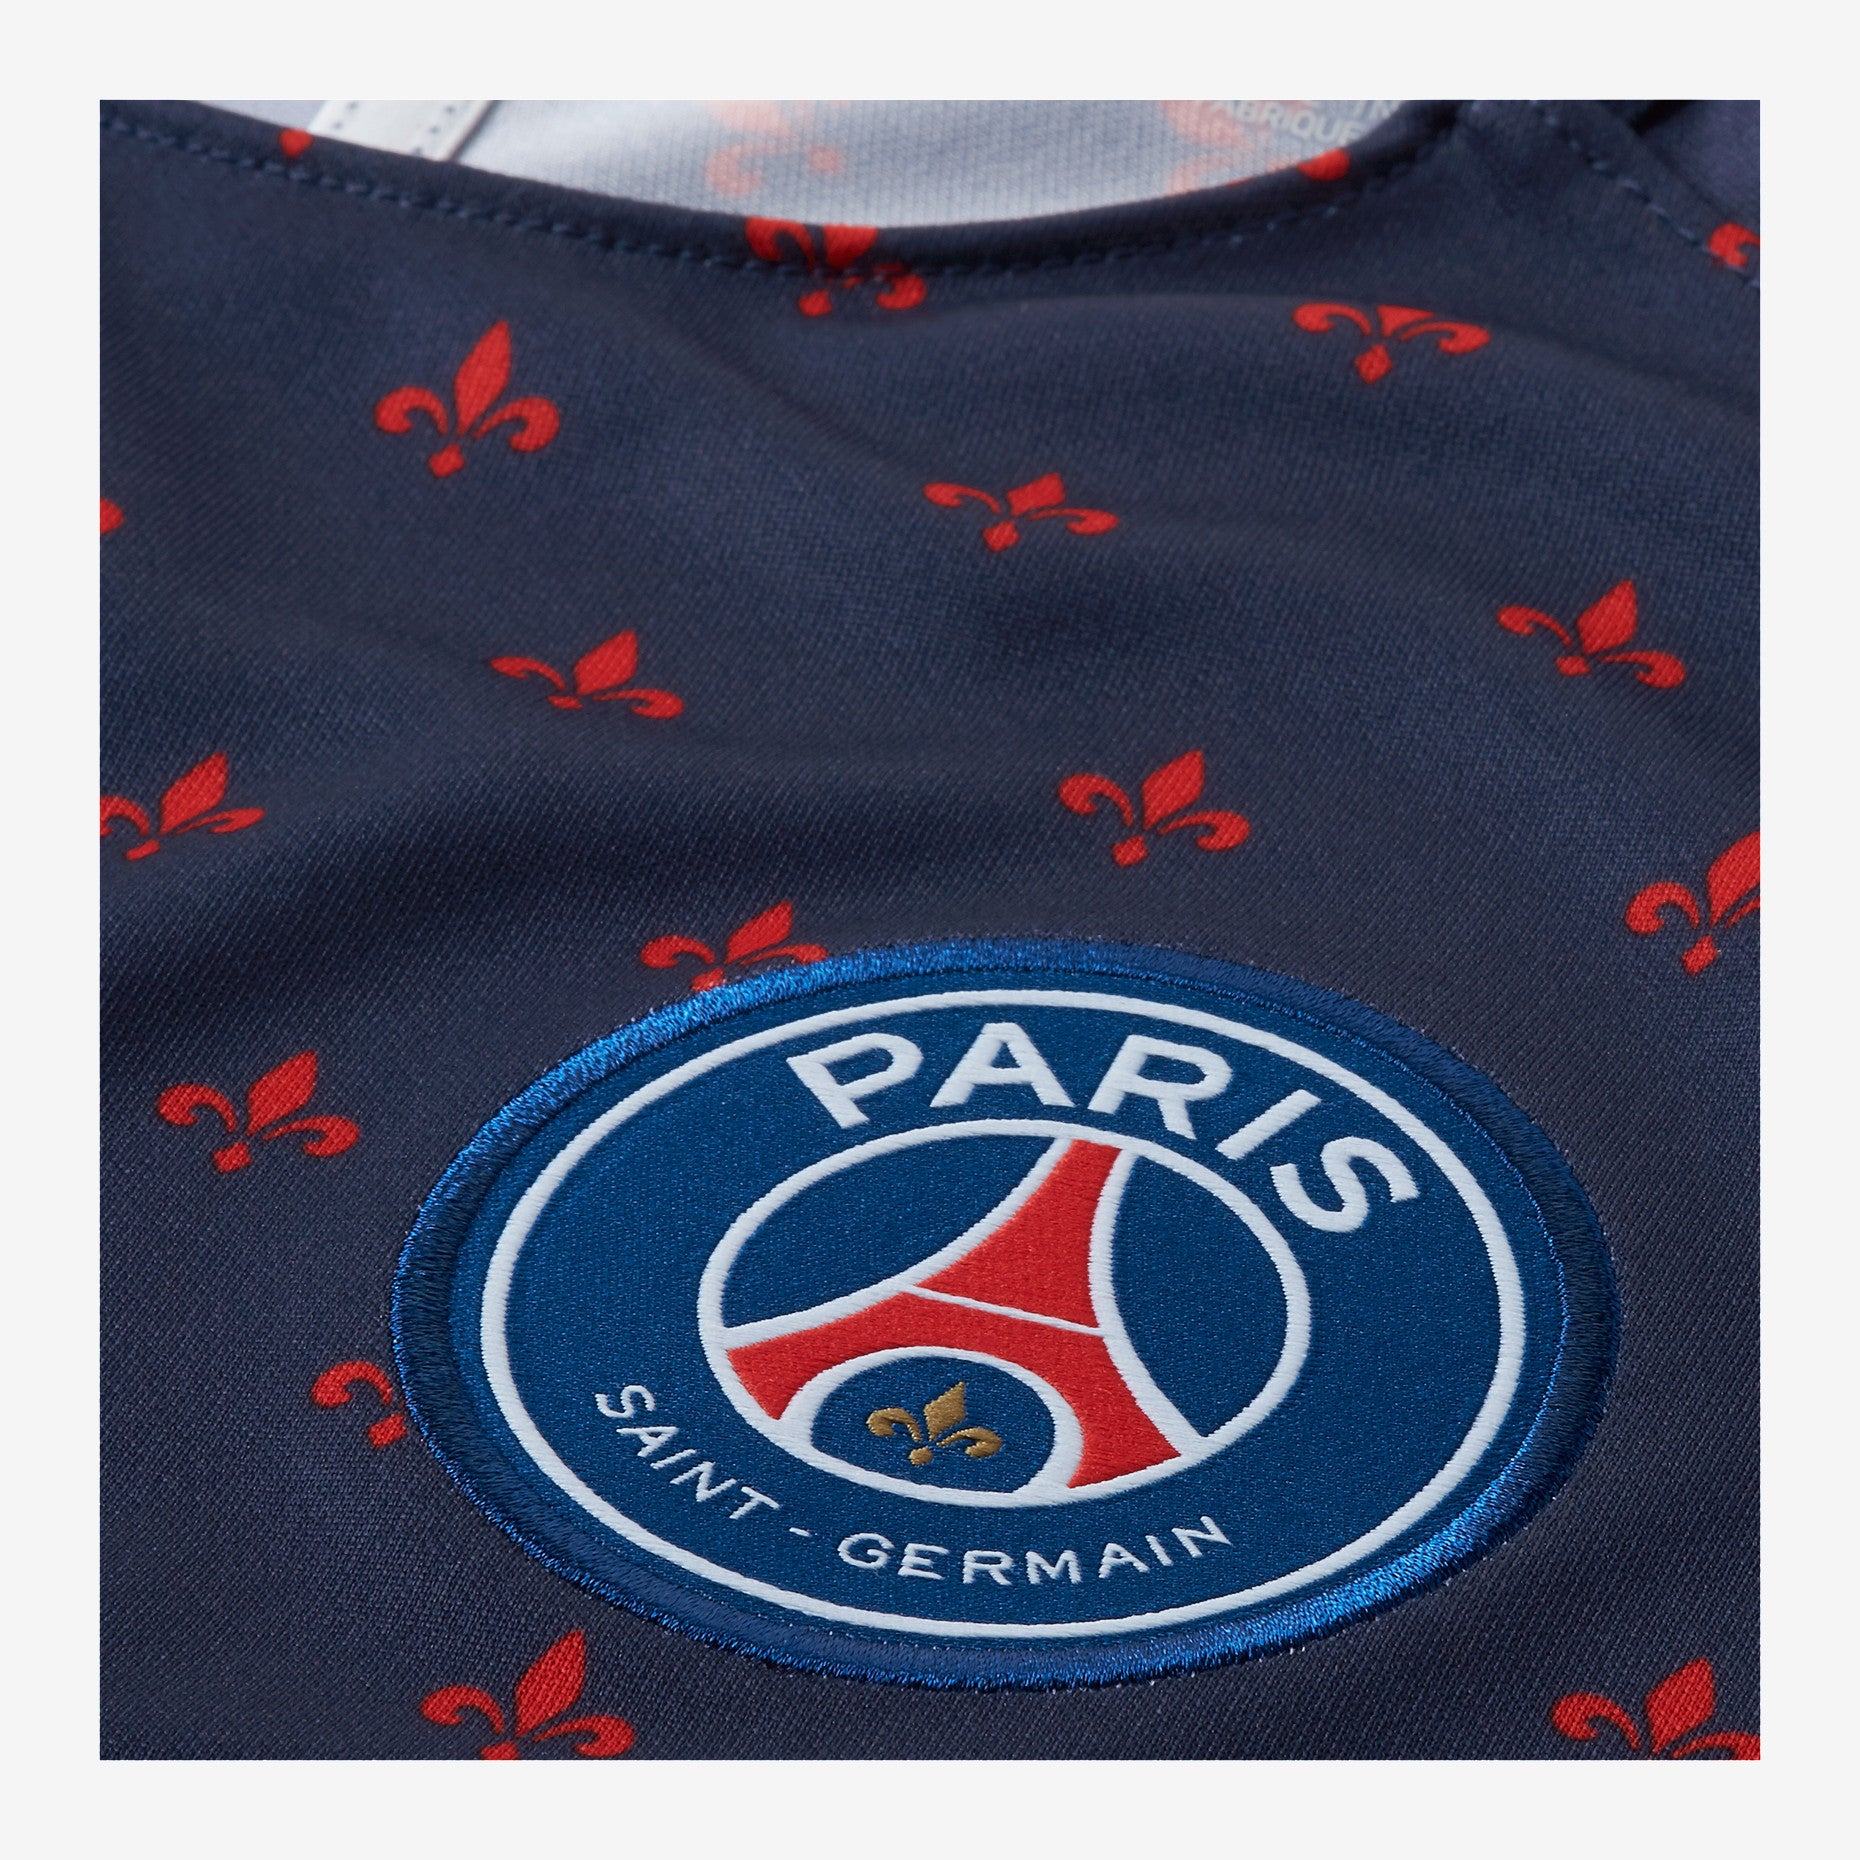 02723a7cd77 Nike - Nike Dry Paris Saint-Germain Squad Top - La Liga Soccer